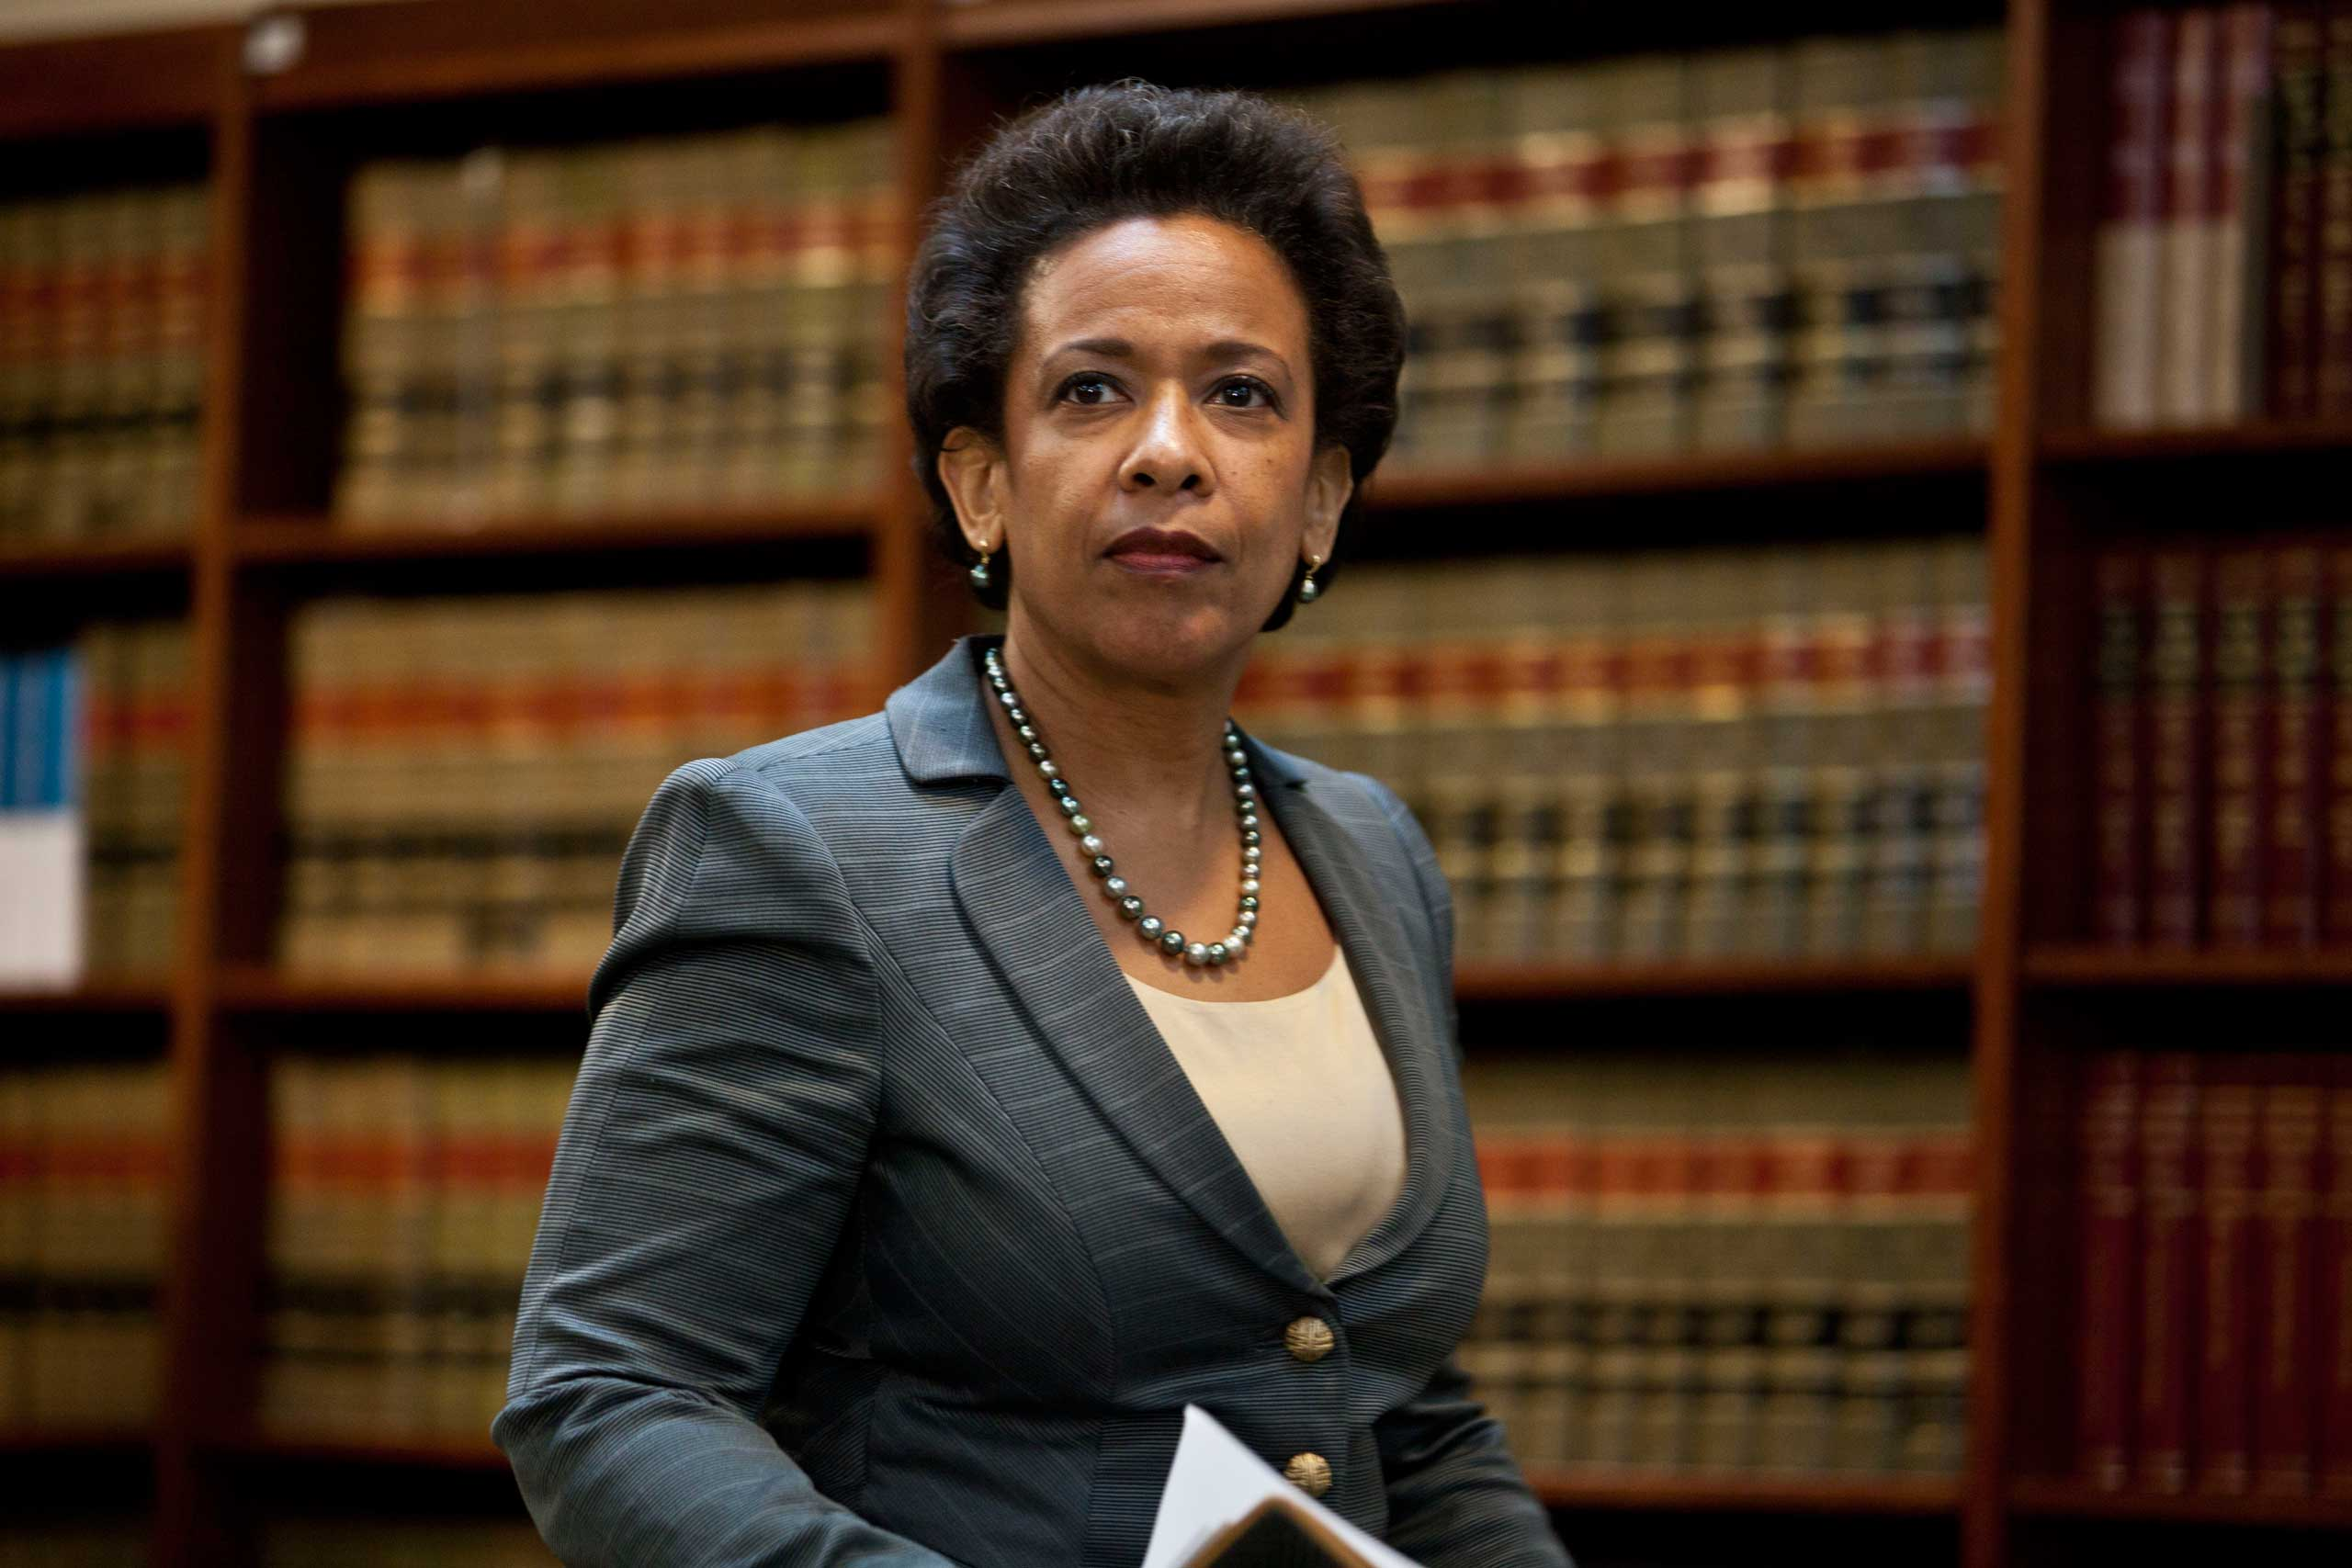 U.S. Attorney for the Eastern District of New York Loretta Lynch arrives for a news conference to announce money laundering charges against HSBC on Dec. 11, 2012 in the Brooklyn borough of New York City.